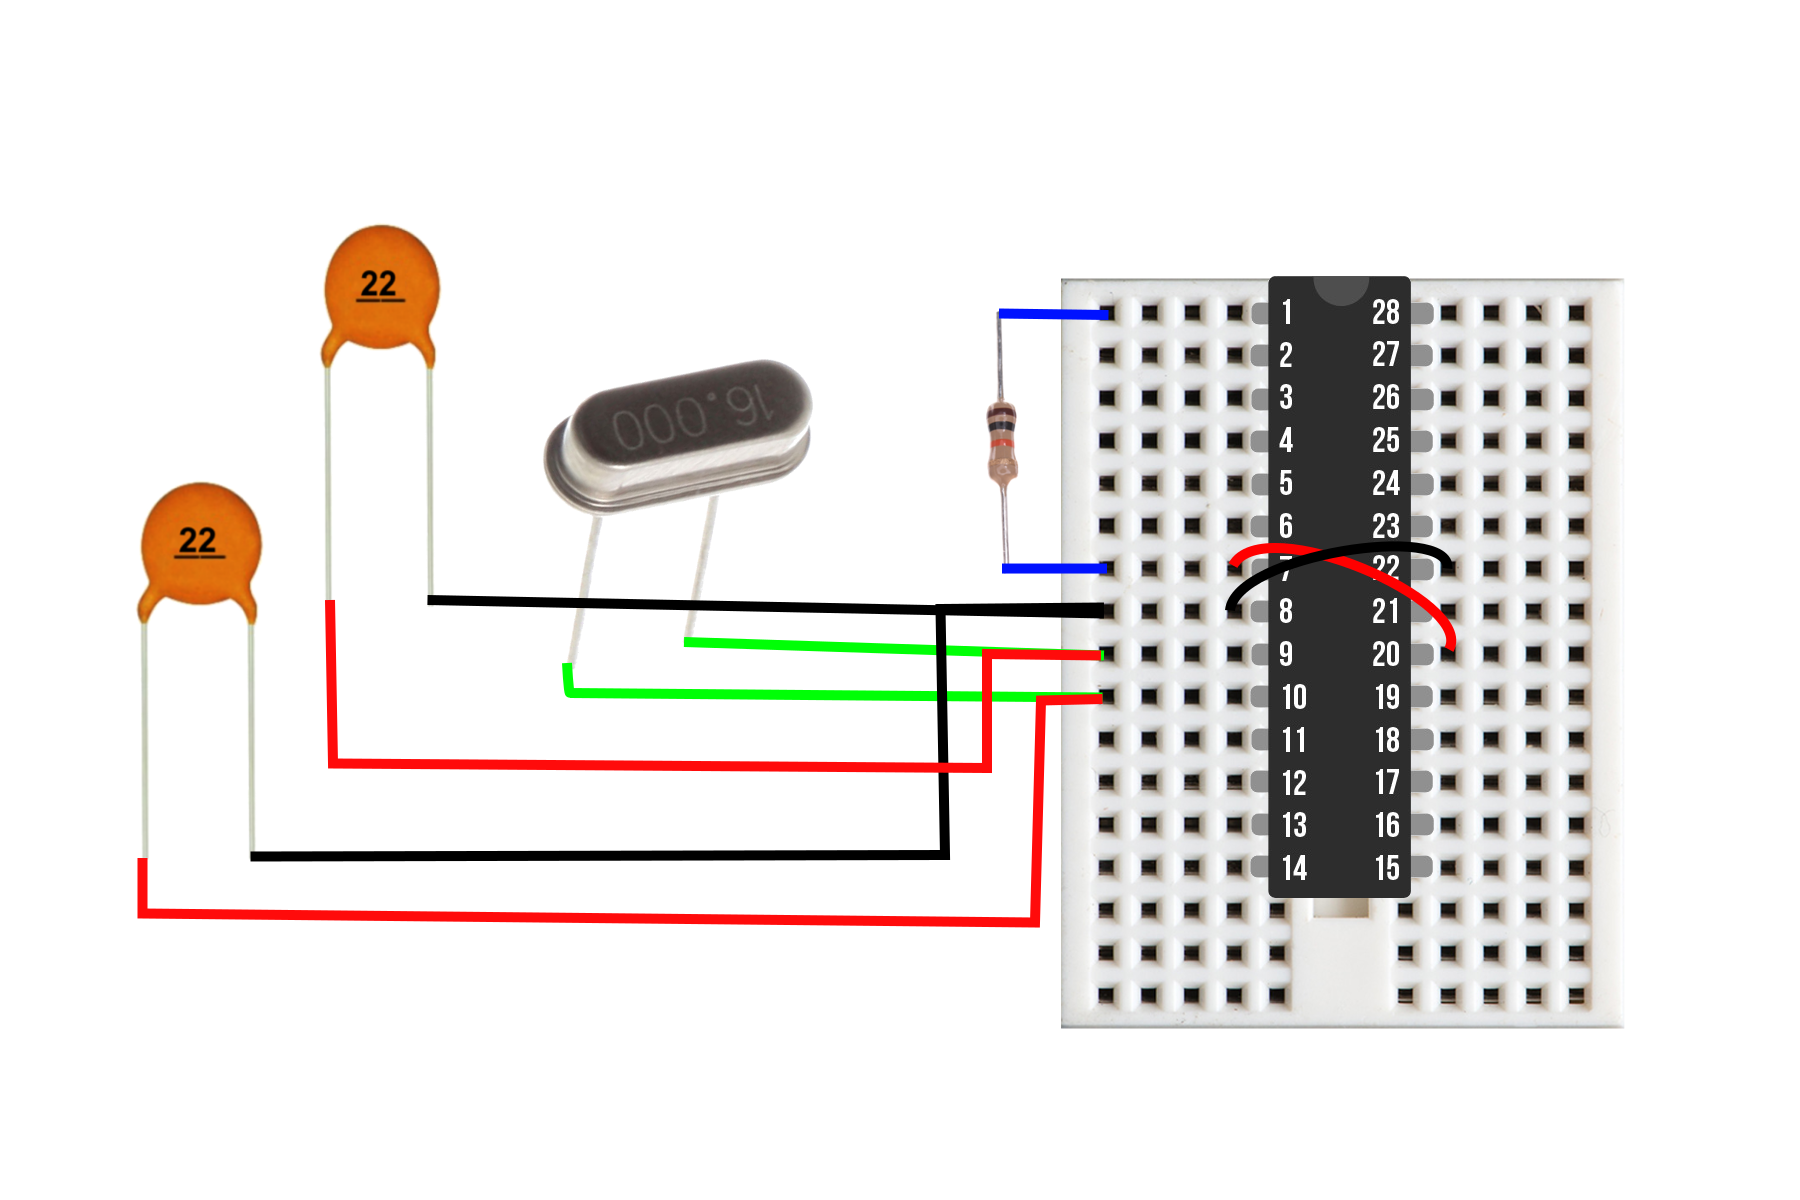 Figure 1:  Component wiring diagram consisting of the dual 22 pf capacitors, 16 MHz crystal oscillator, 10 kOhm resistor, and ATmega328p chip. These components create a low-cost Arduino board that will be integrated into the Internet of Things (IoT). The total component cost is less than $3.